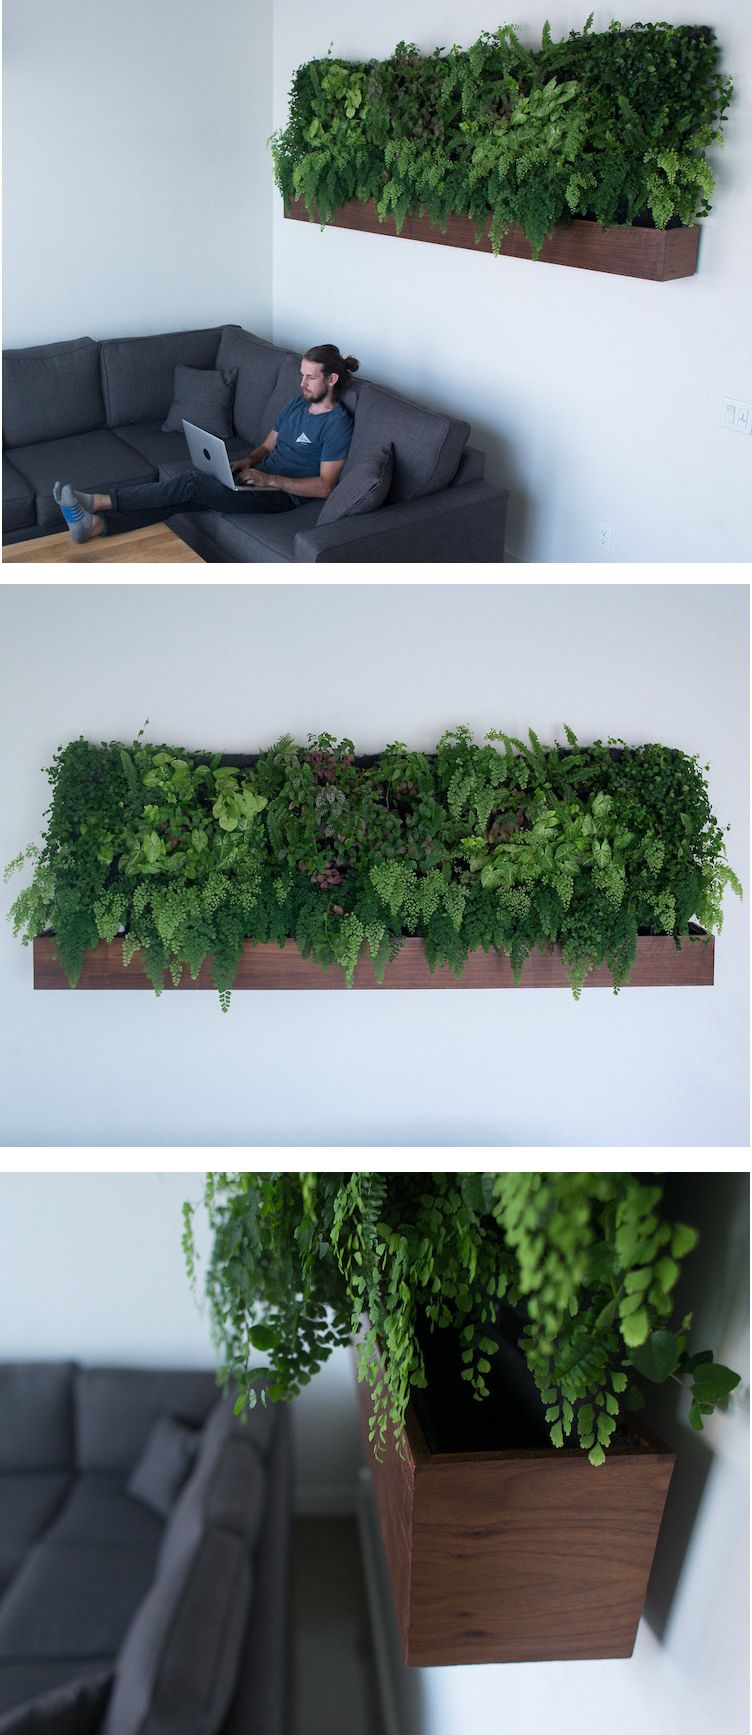 Selfwatering vertical gardens make it easier than ever to keep